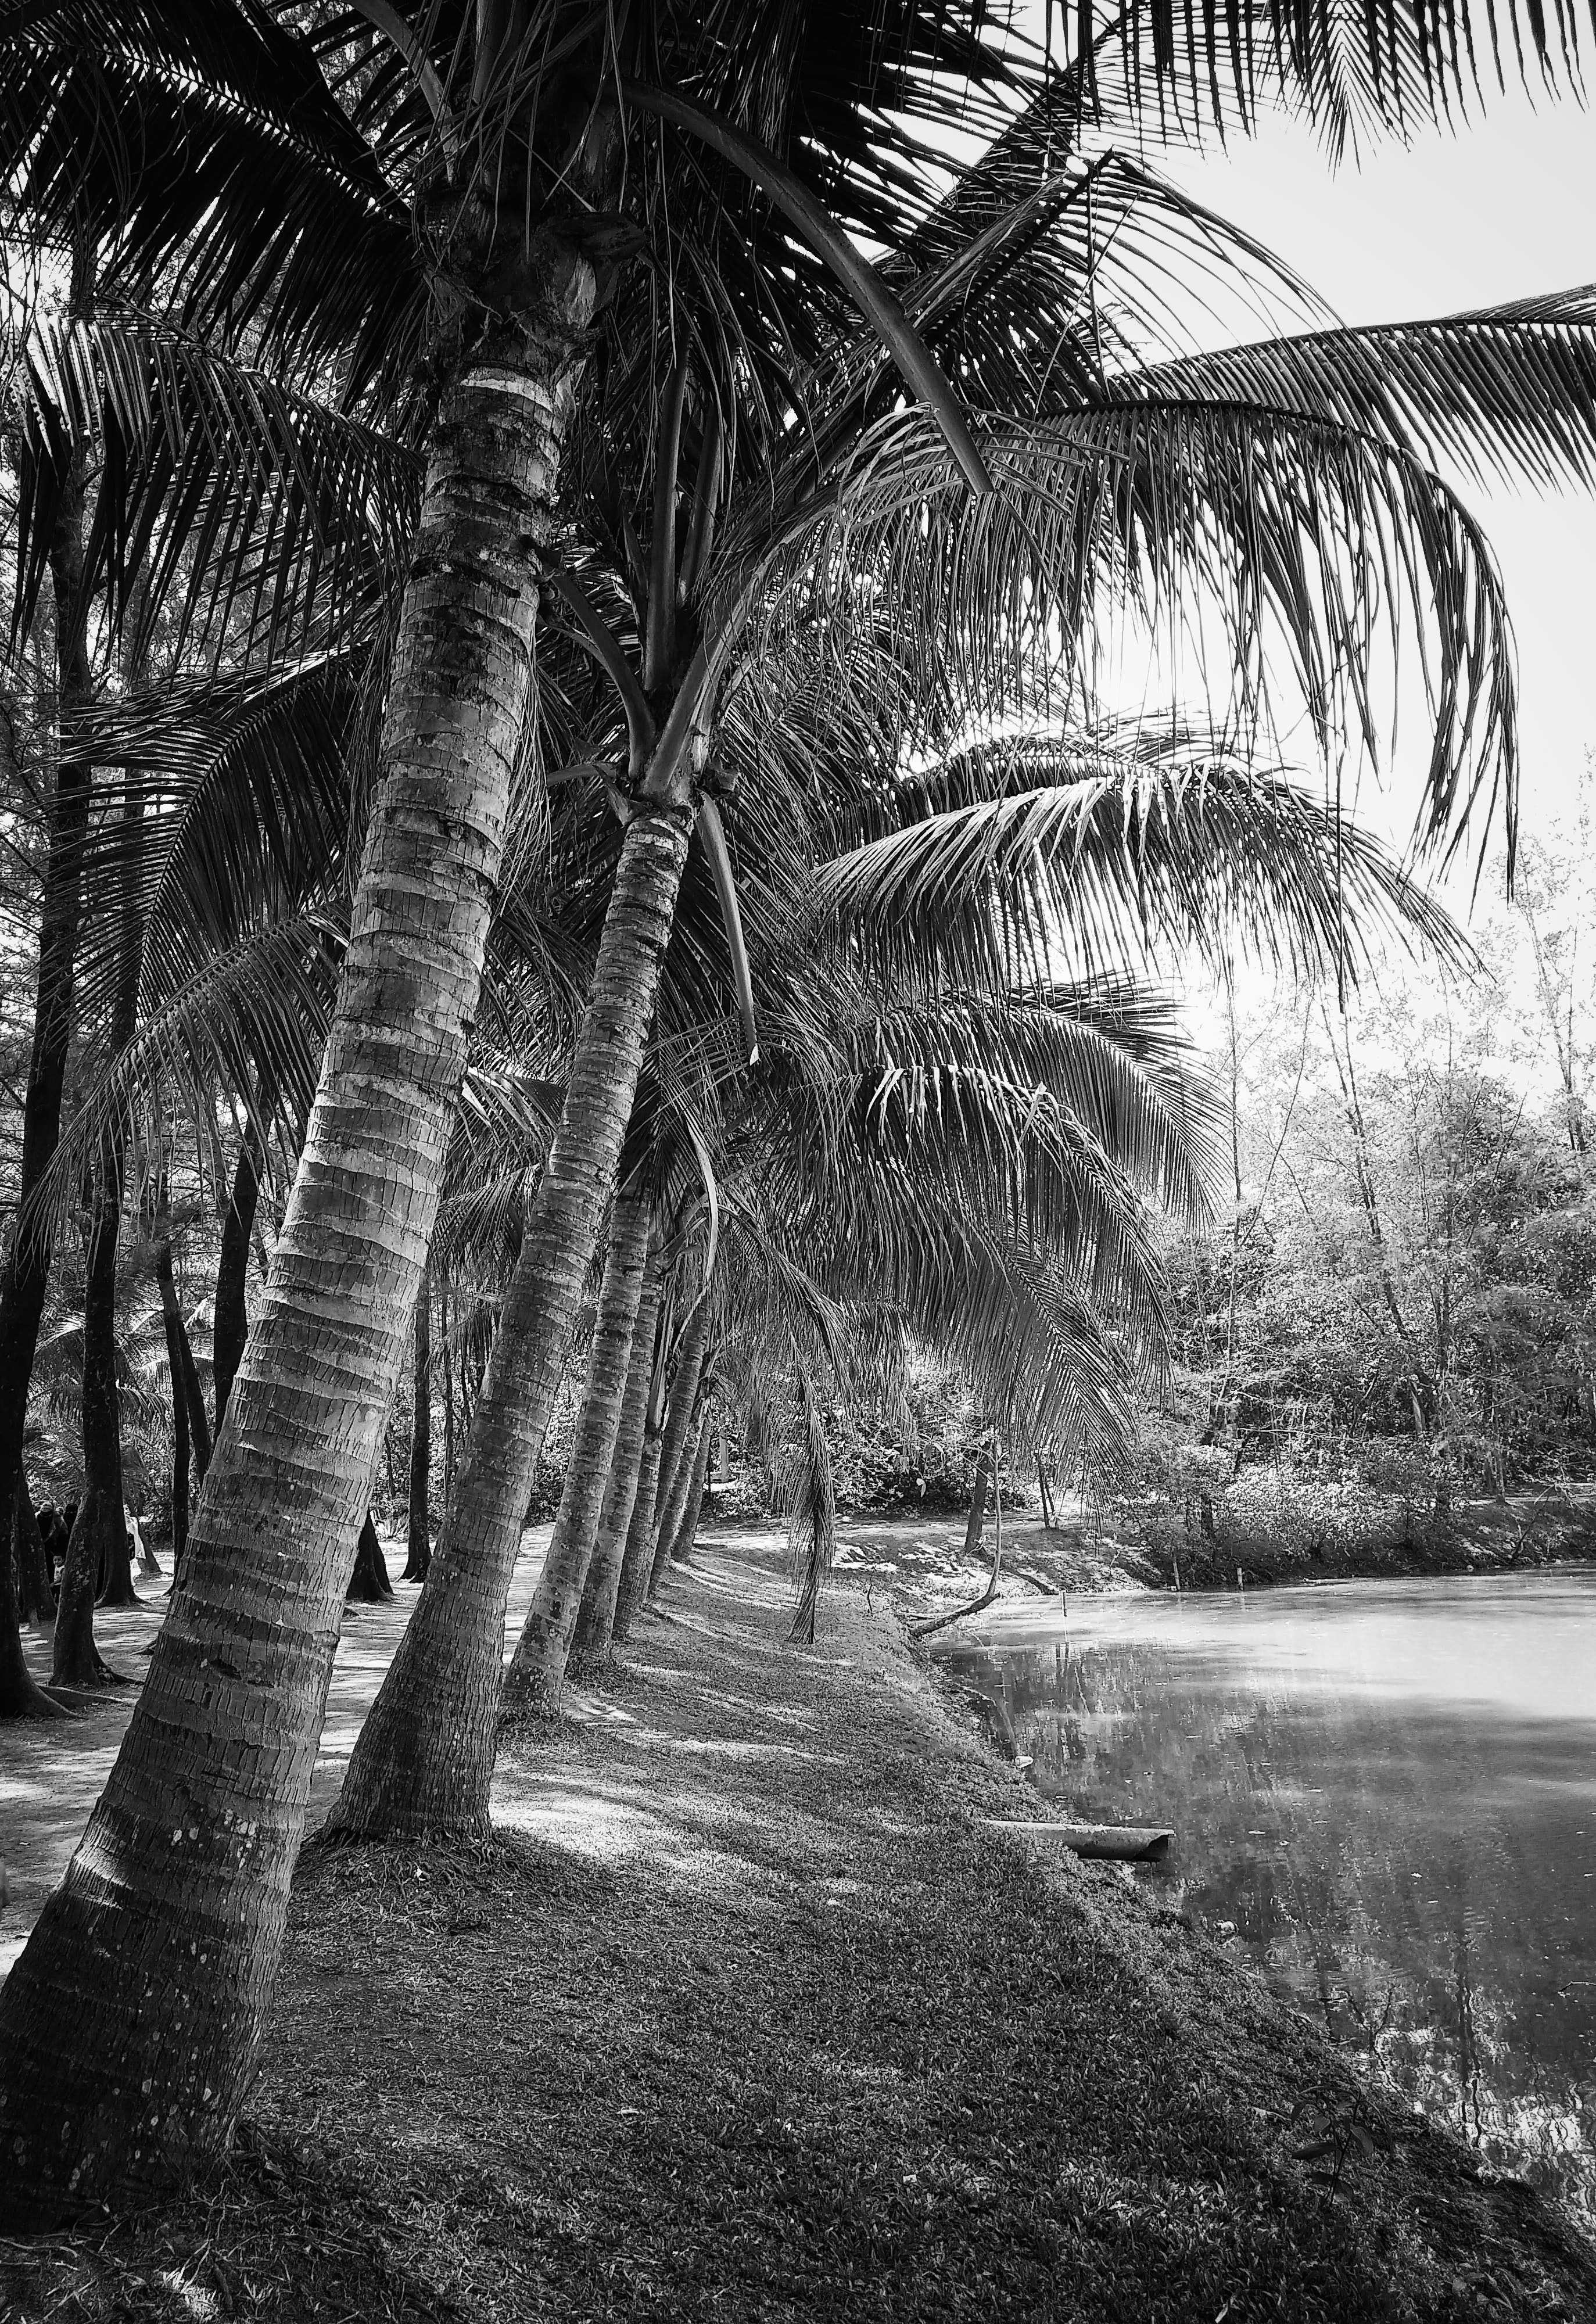 Grayscale photography of coconut trees beside body of water